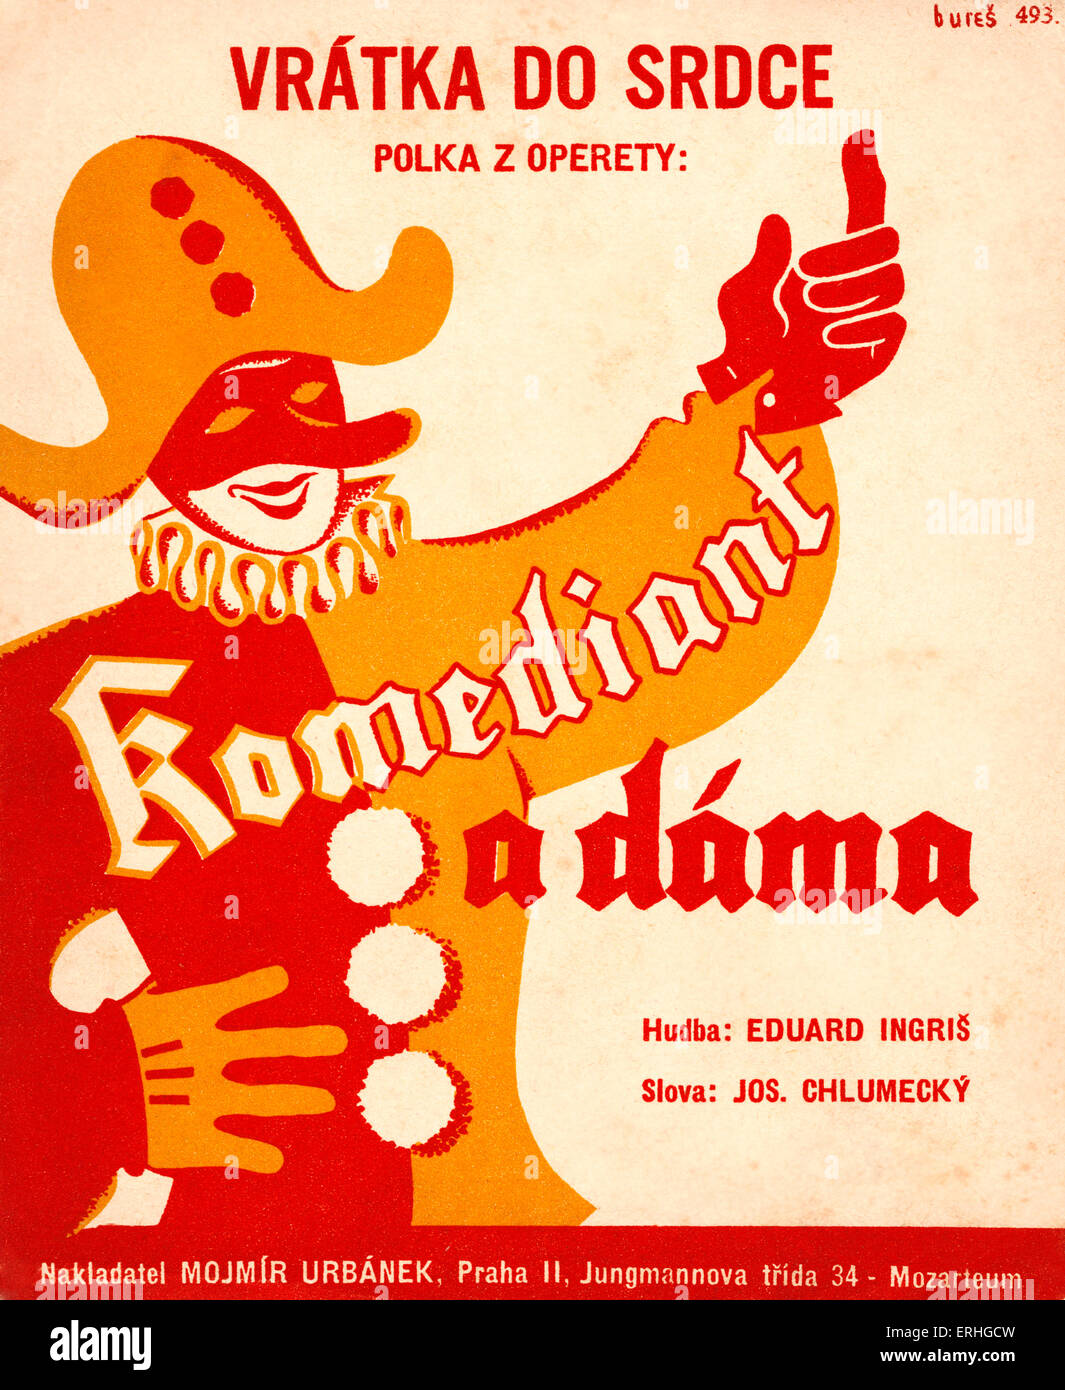 Pierrot / court jester / fool on Czech score cover for polka 'Komediant a dáma', with music by Eduard - Stock Image